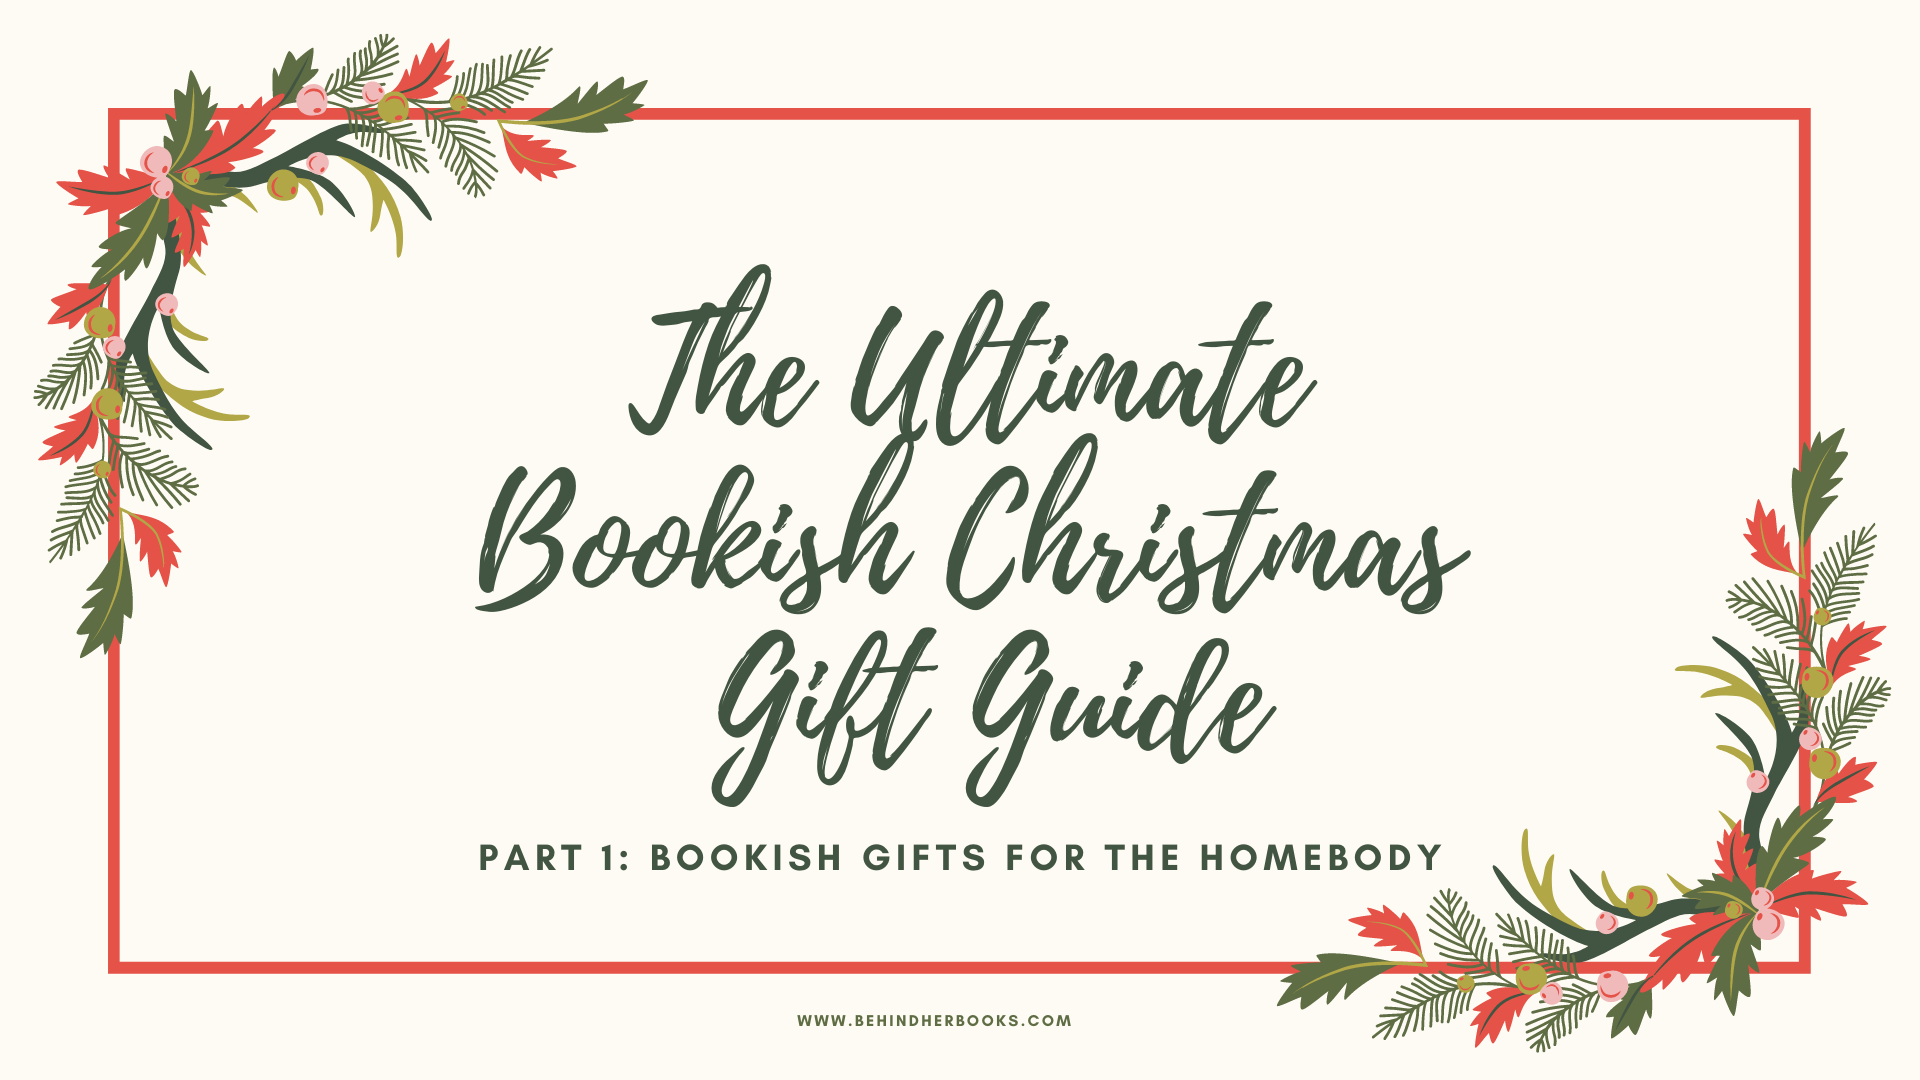 Bookish Gifts for the Homebody